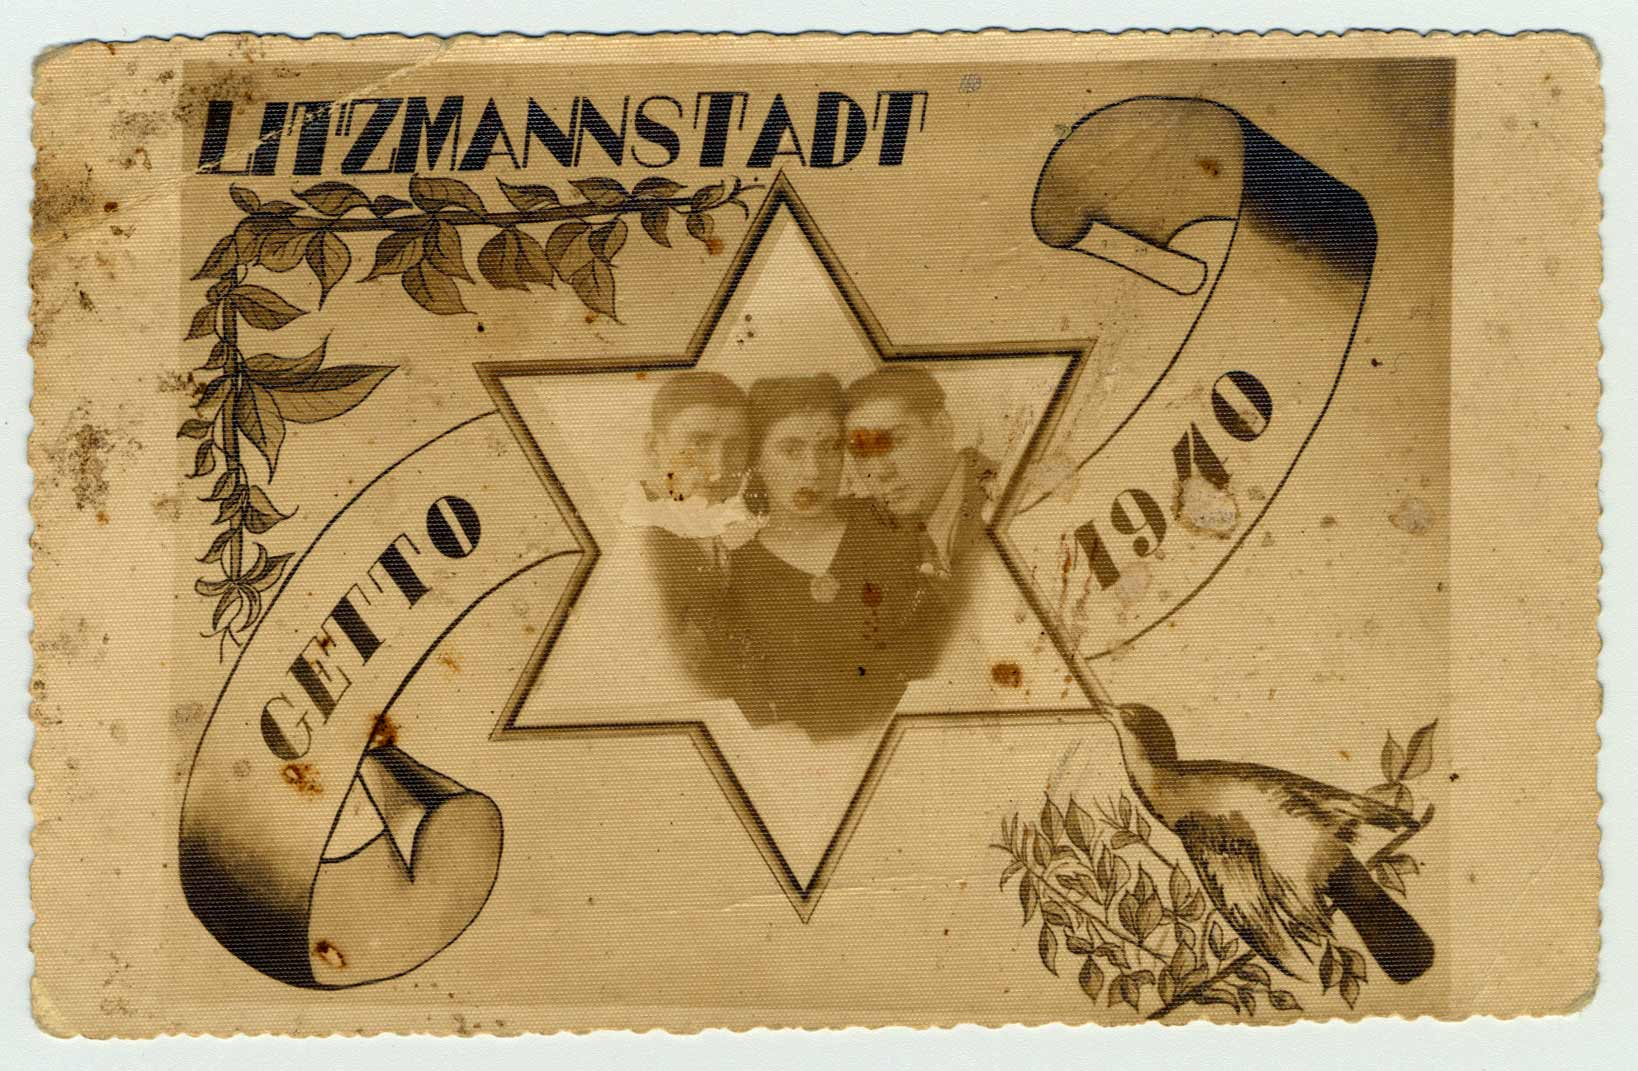 The postcard measures 4x6 inches. A vine and a dove are visible on an olive branch, both symbols of peace. Avrum Feigenbaum, his brother Mordechai, and his wife Minka took great risks to pose for this photo.